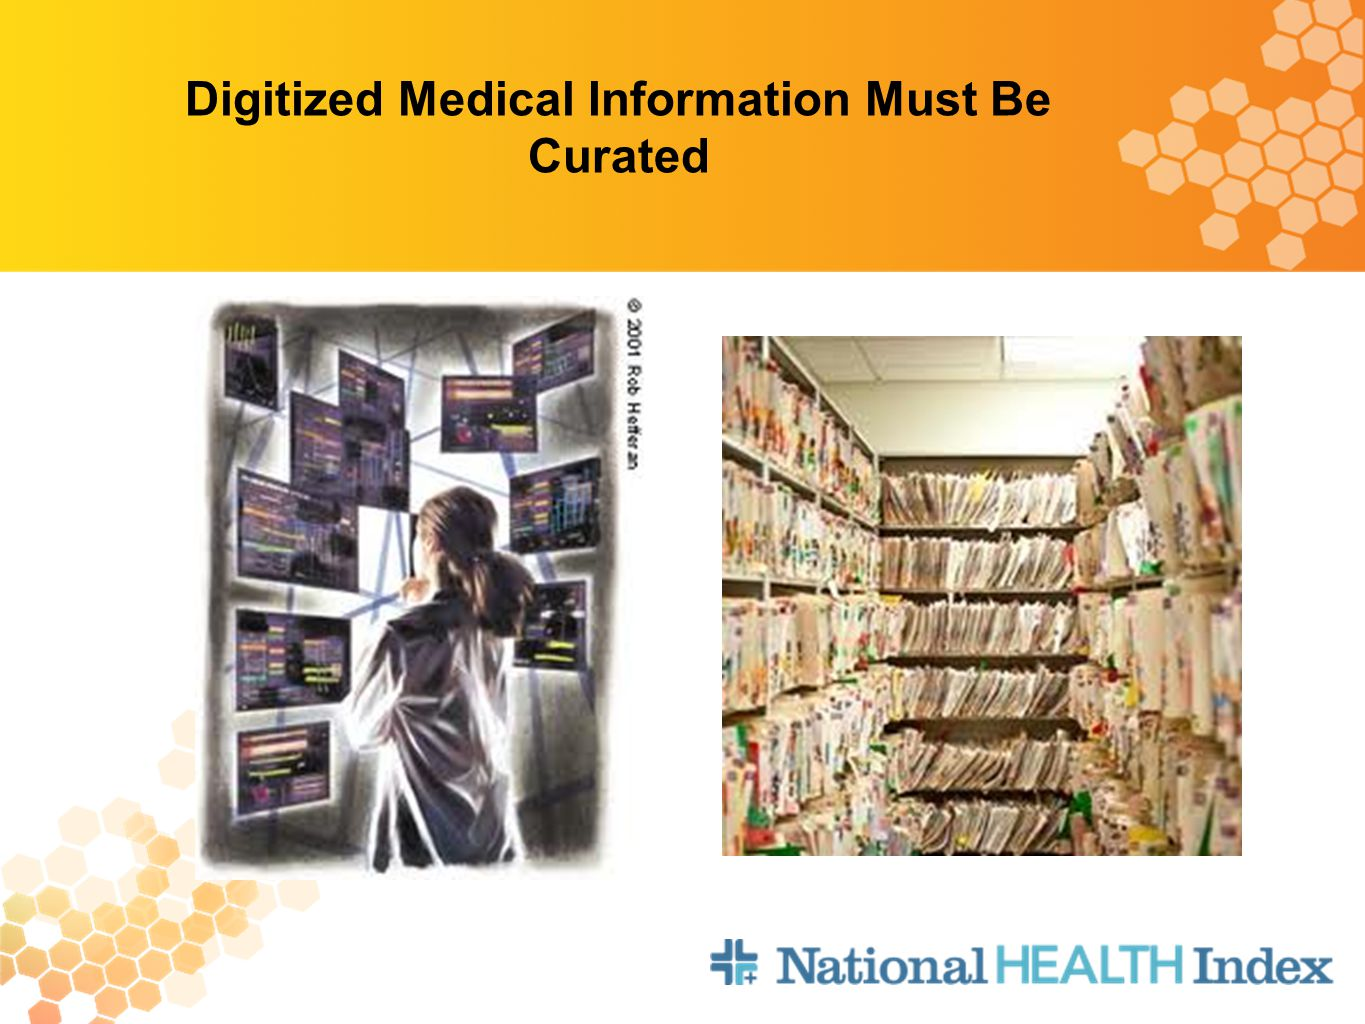 Digitized Medical Information Must Be Curated